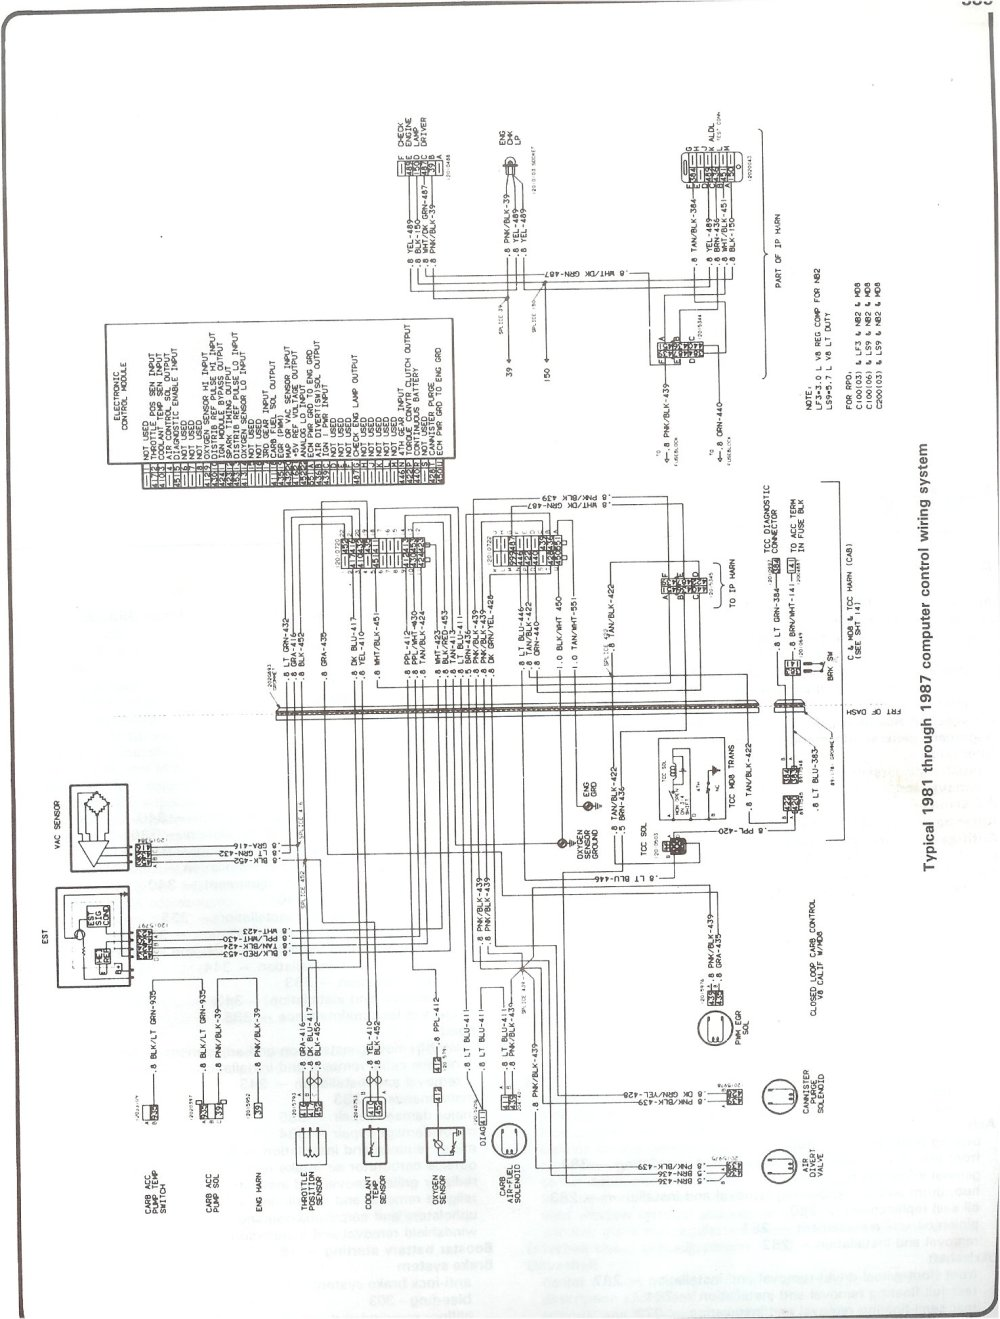 medium resolution of complete 73 87 wiring diagrams 87 chevy camaro engine compartment wiring diagram 81 87 computer control